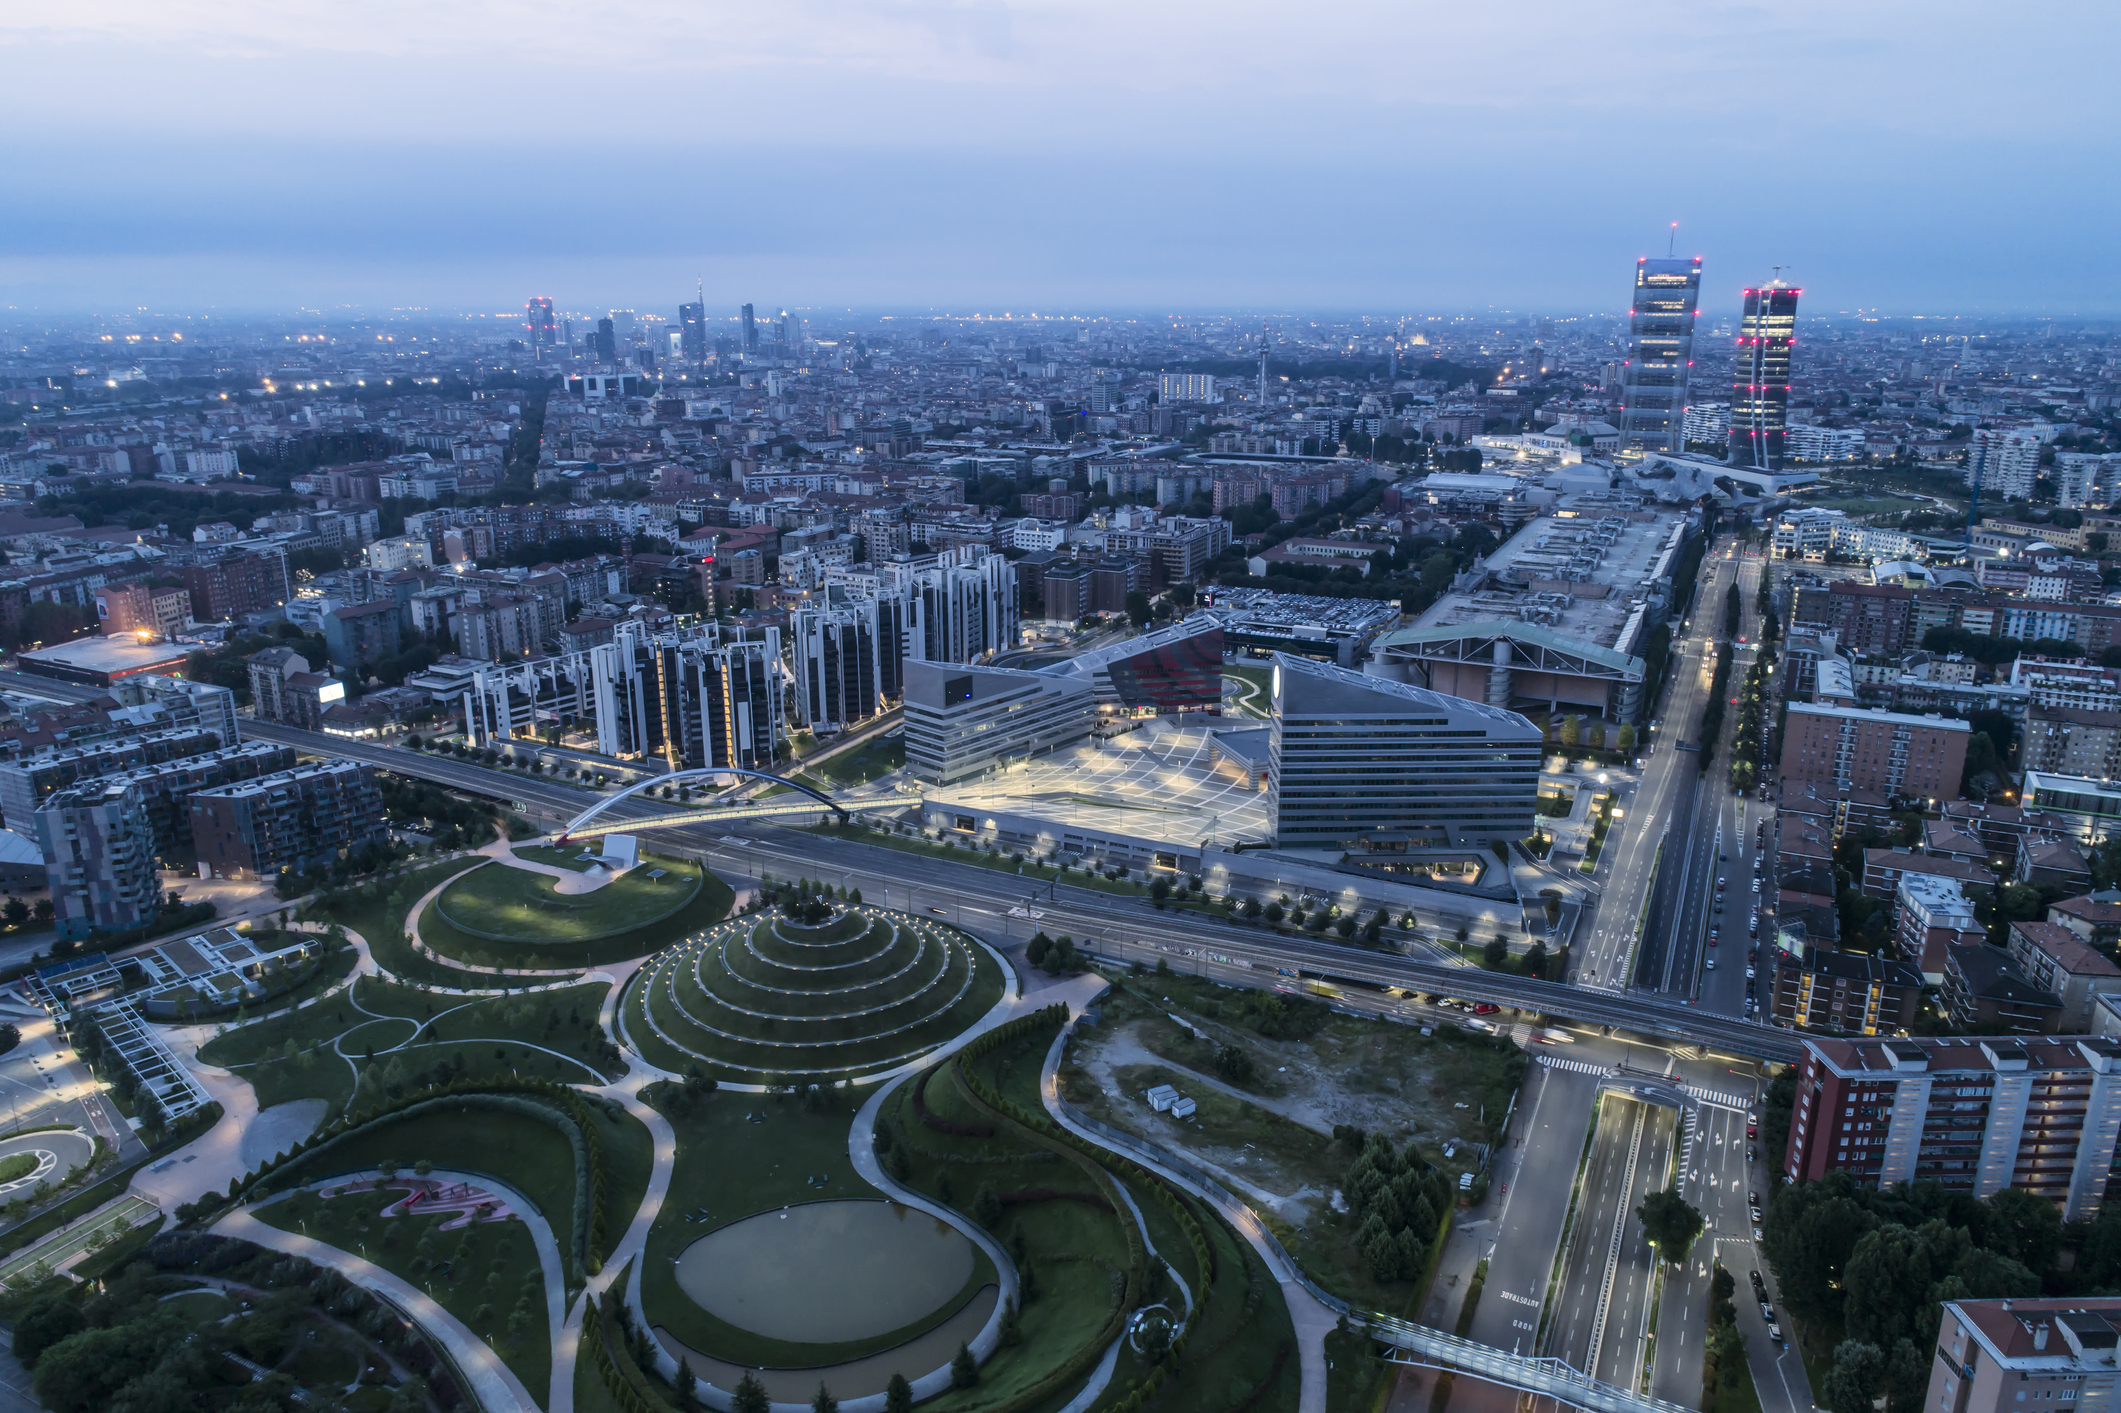 Aerial view of Milan